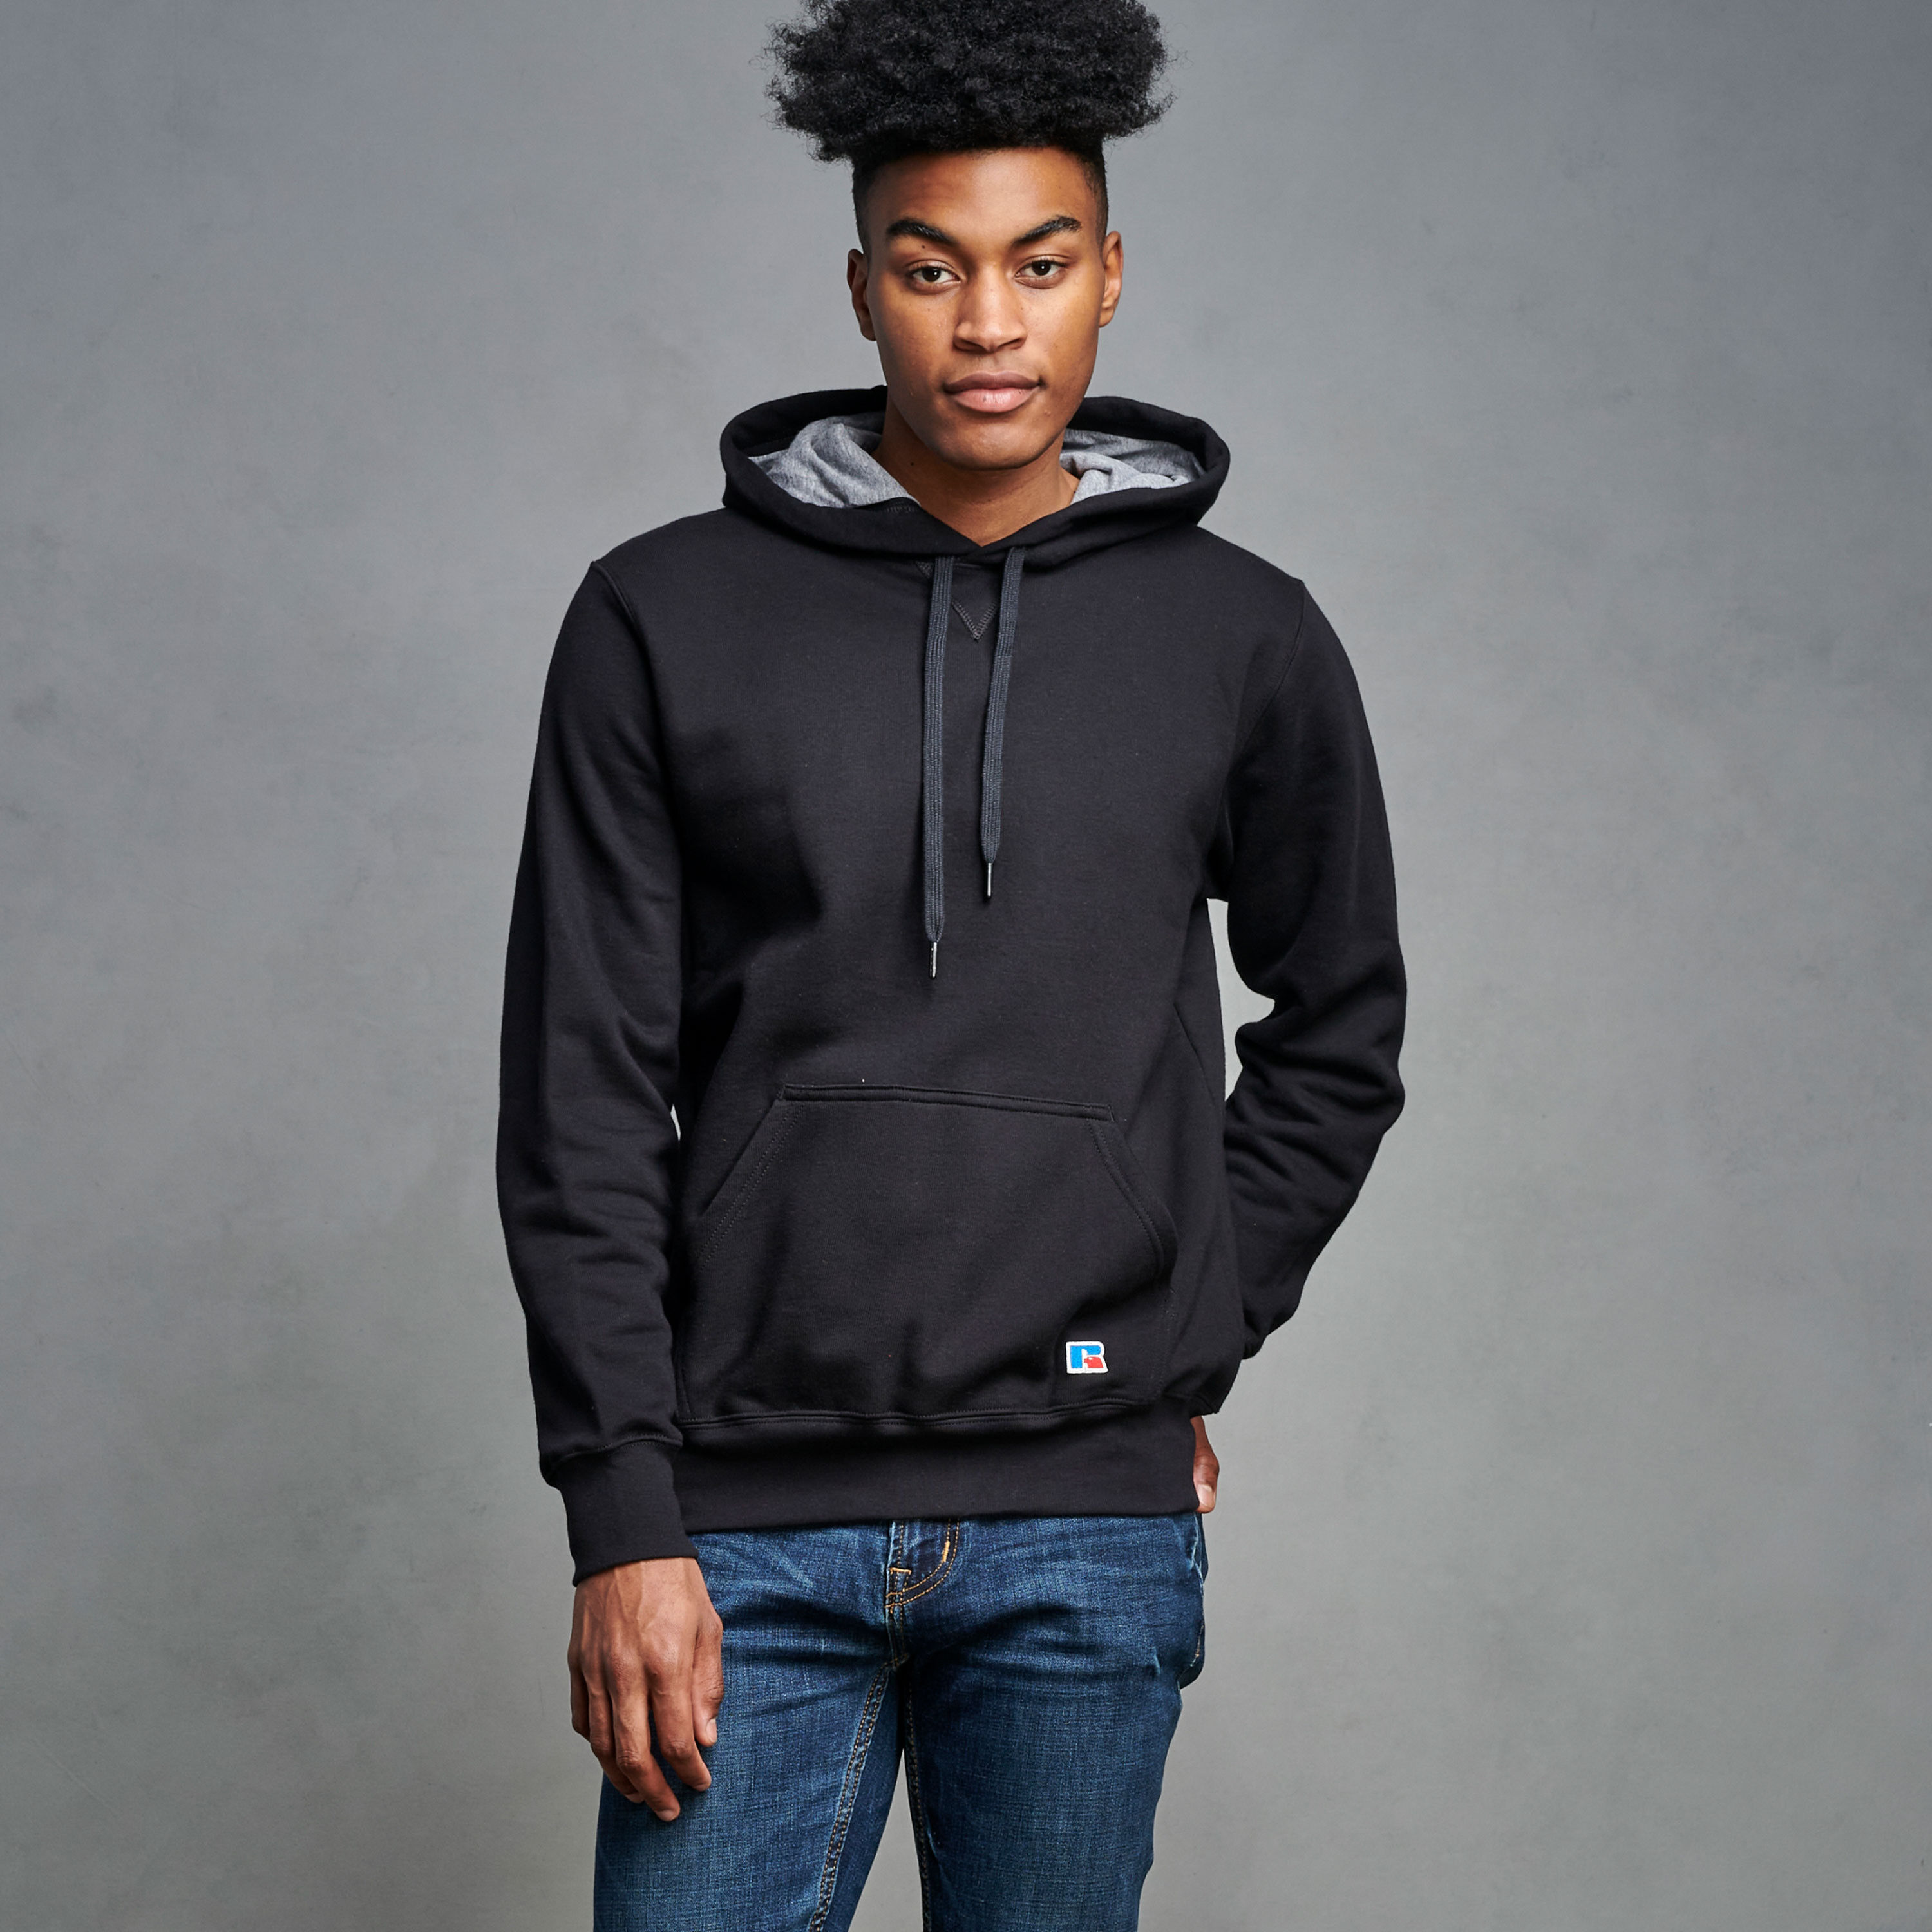 Well Both Be Wrong Hoodies Sweatshirt for Men Pullover Classic with Pockets XXL Black If I Agree with You